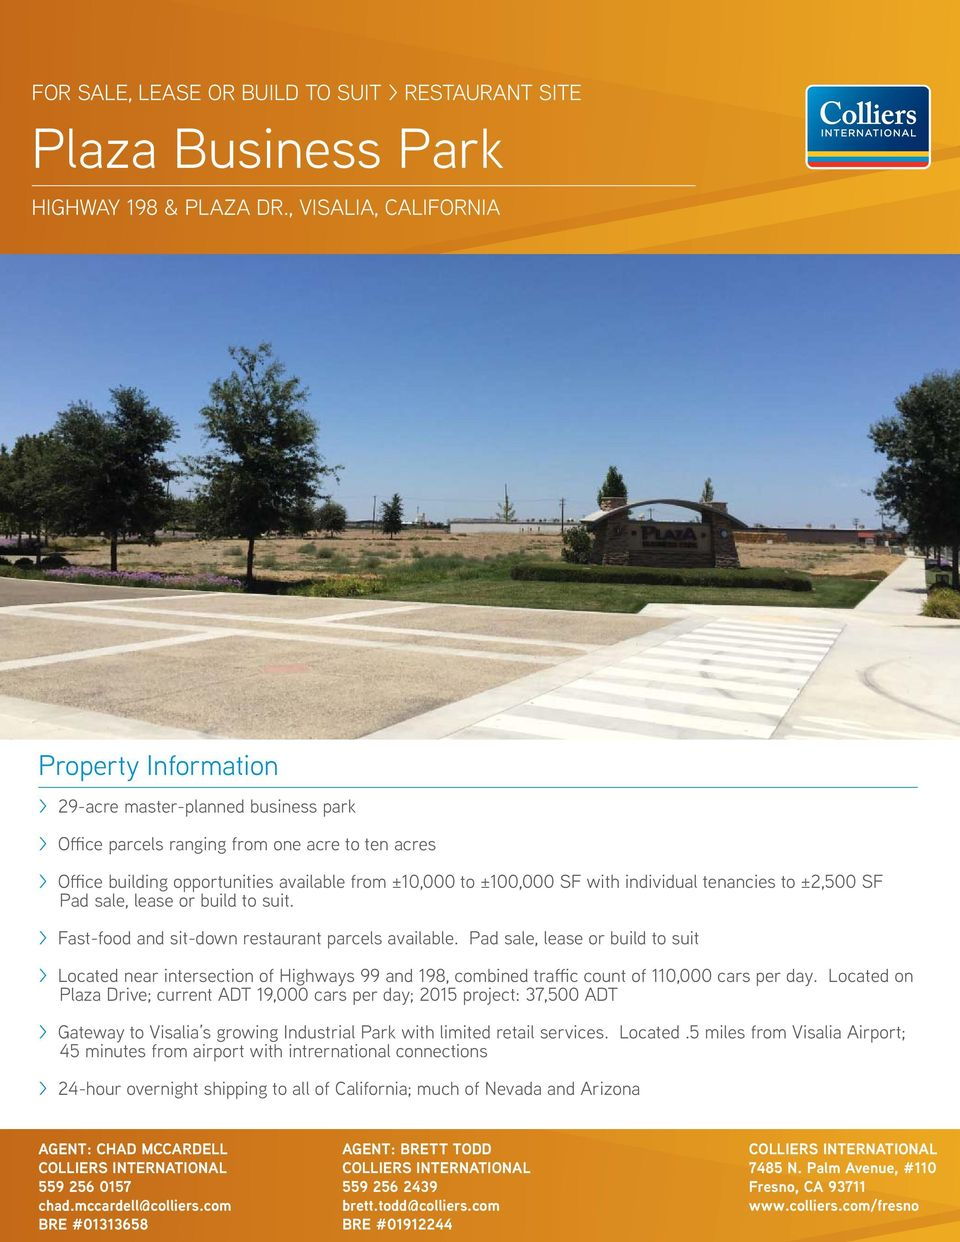 tenancies to ±2,500 SF Pad sale, lease or build to suit. > Fast-food and sit-down restaurant parcels available.